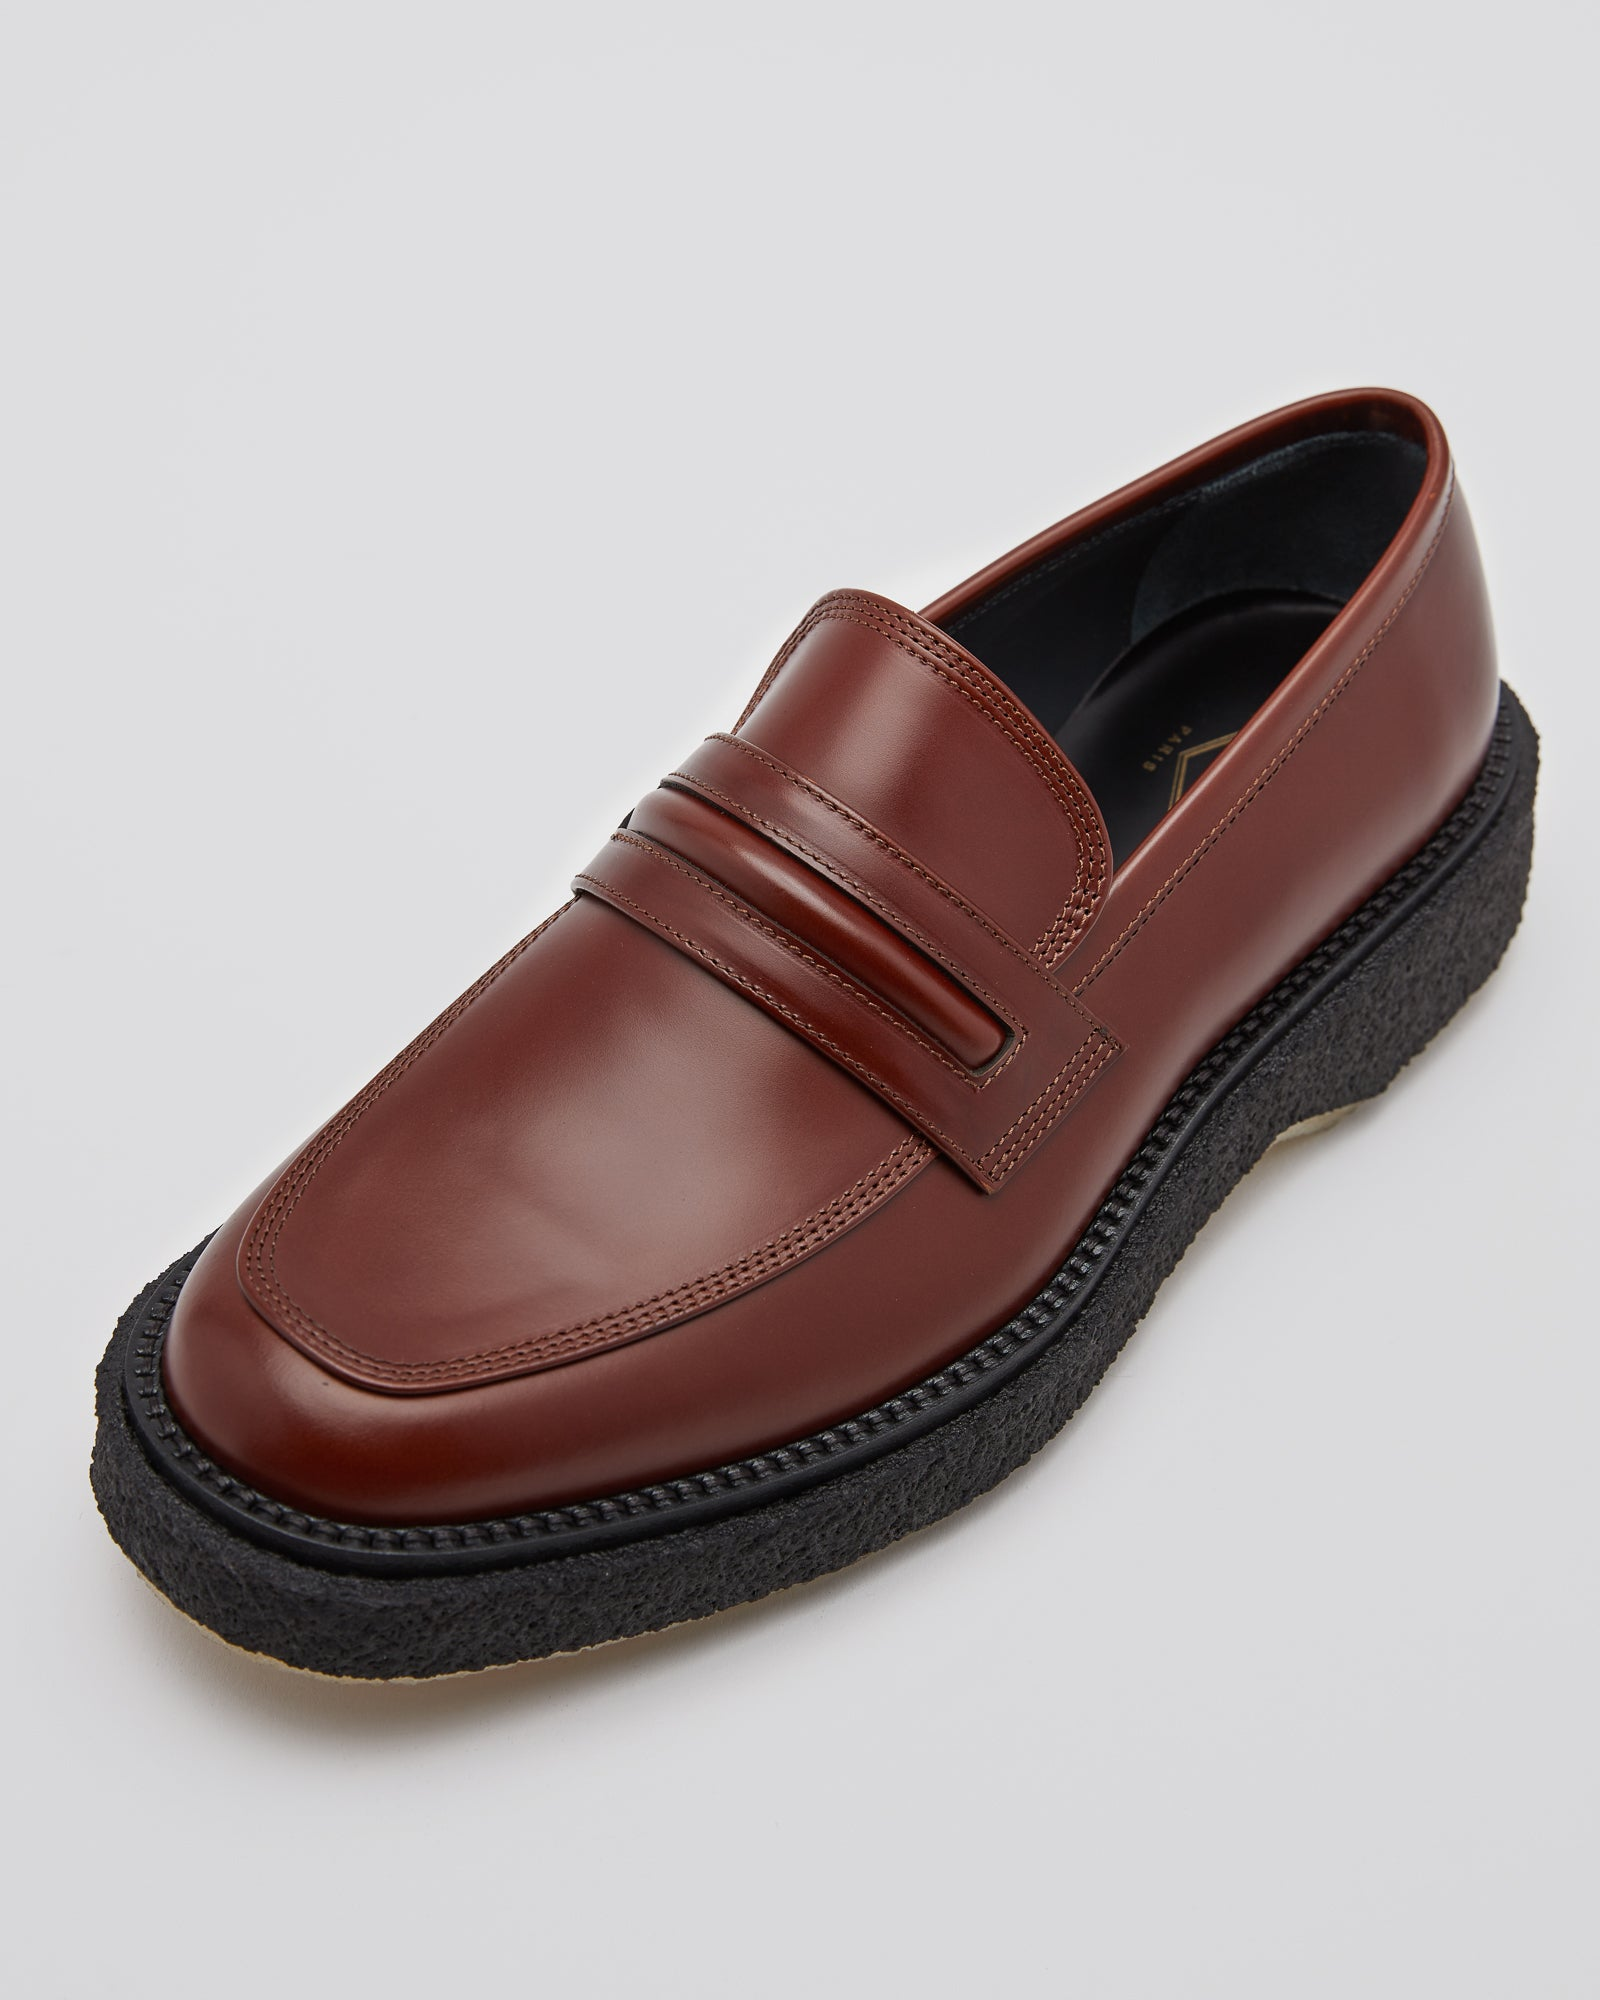 Type 147 Loafer in Medium Brown